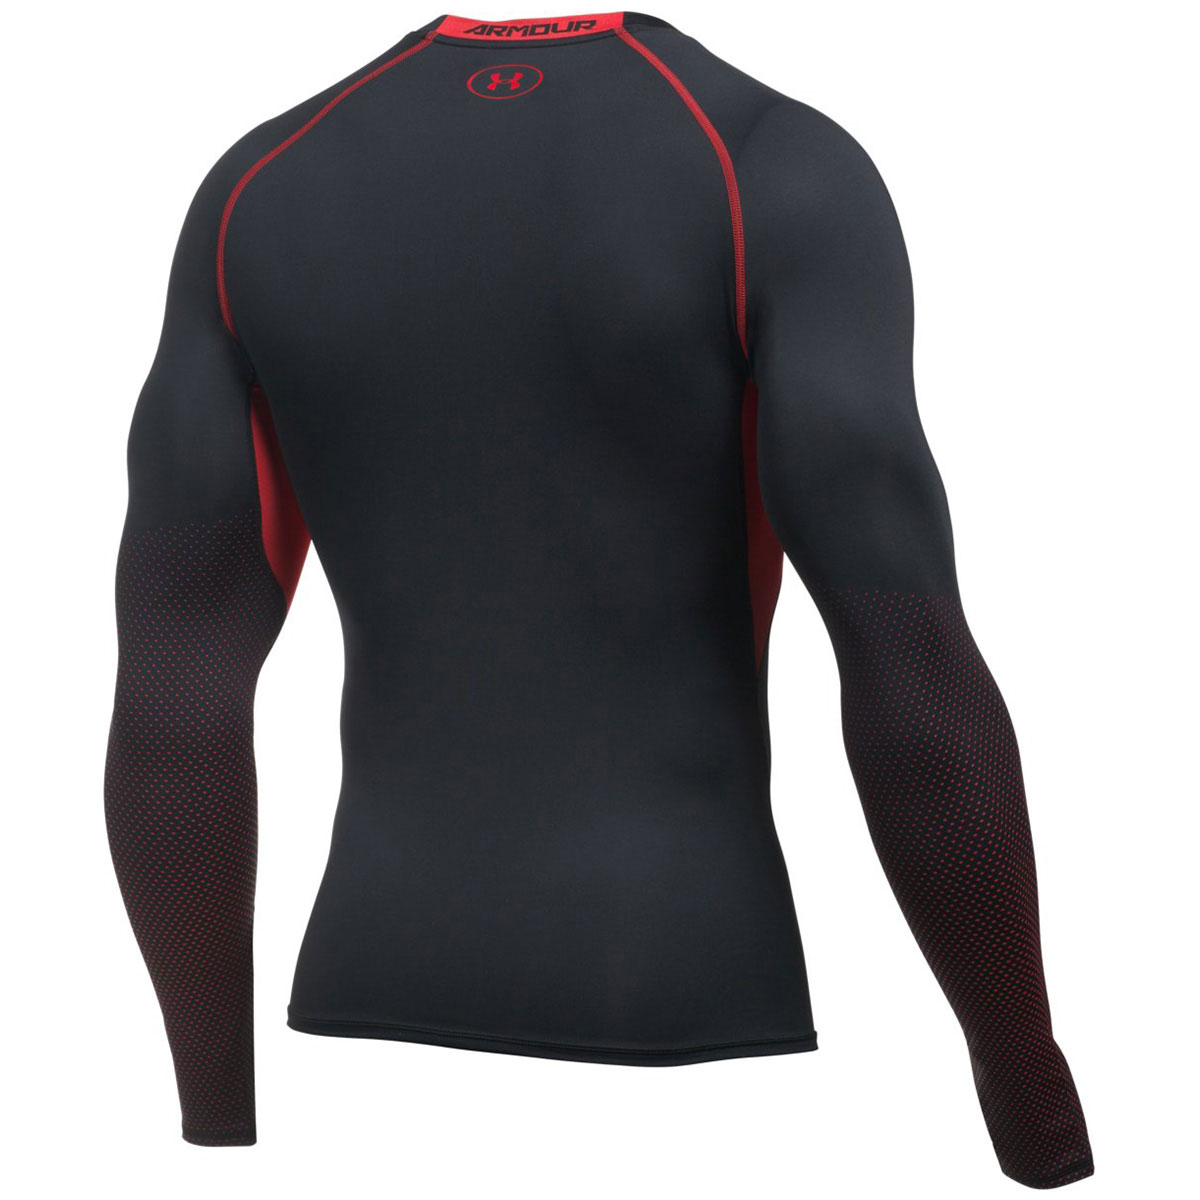 Under Armour 2016 Mens Hg Armour Graphic Long Sleeve